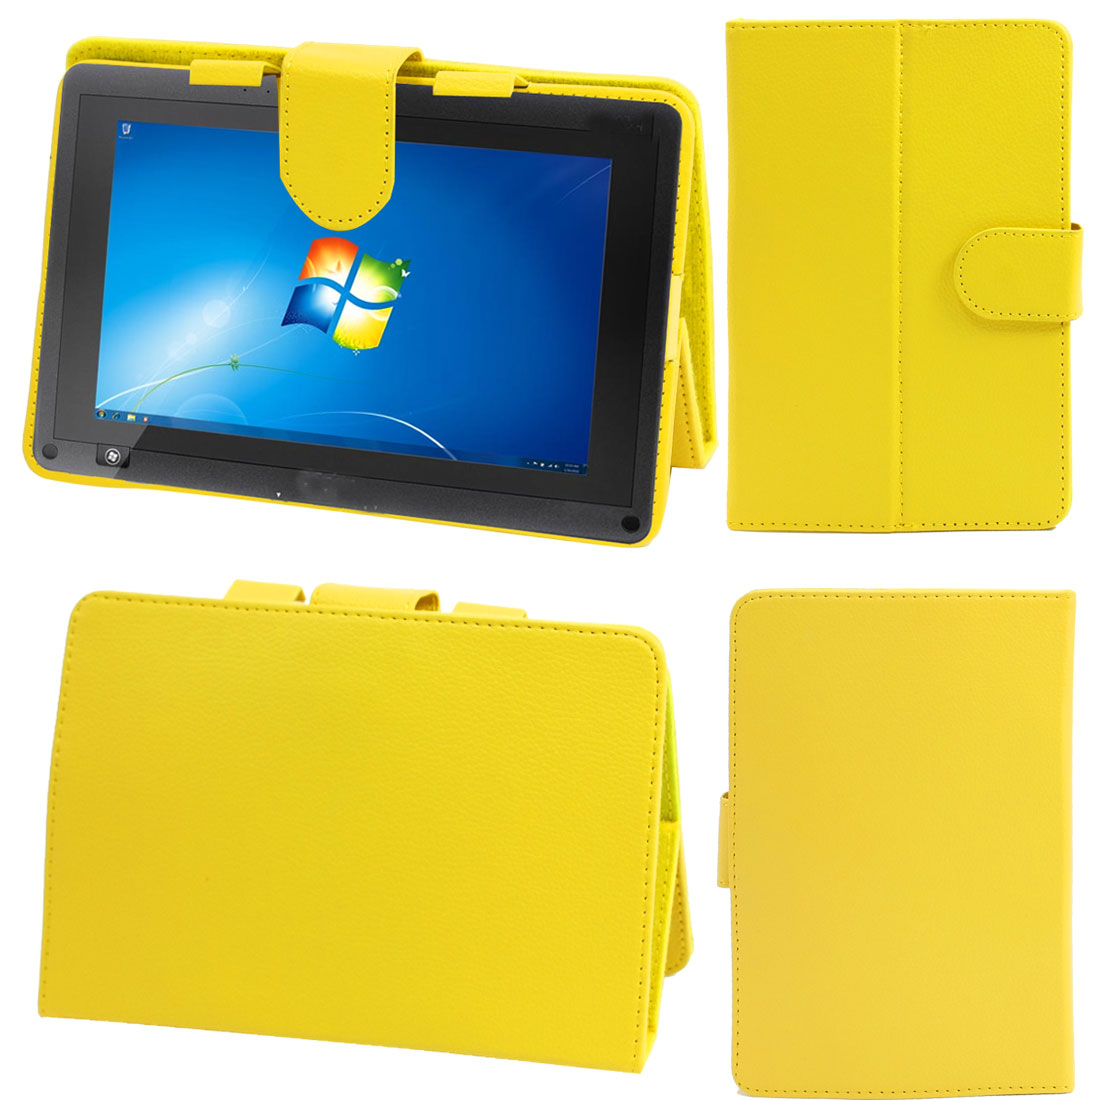 "Yellow Faux Leather Foldable Folio Case Cover for 7"" Laptop Tablet"